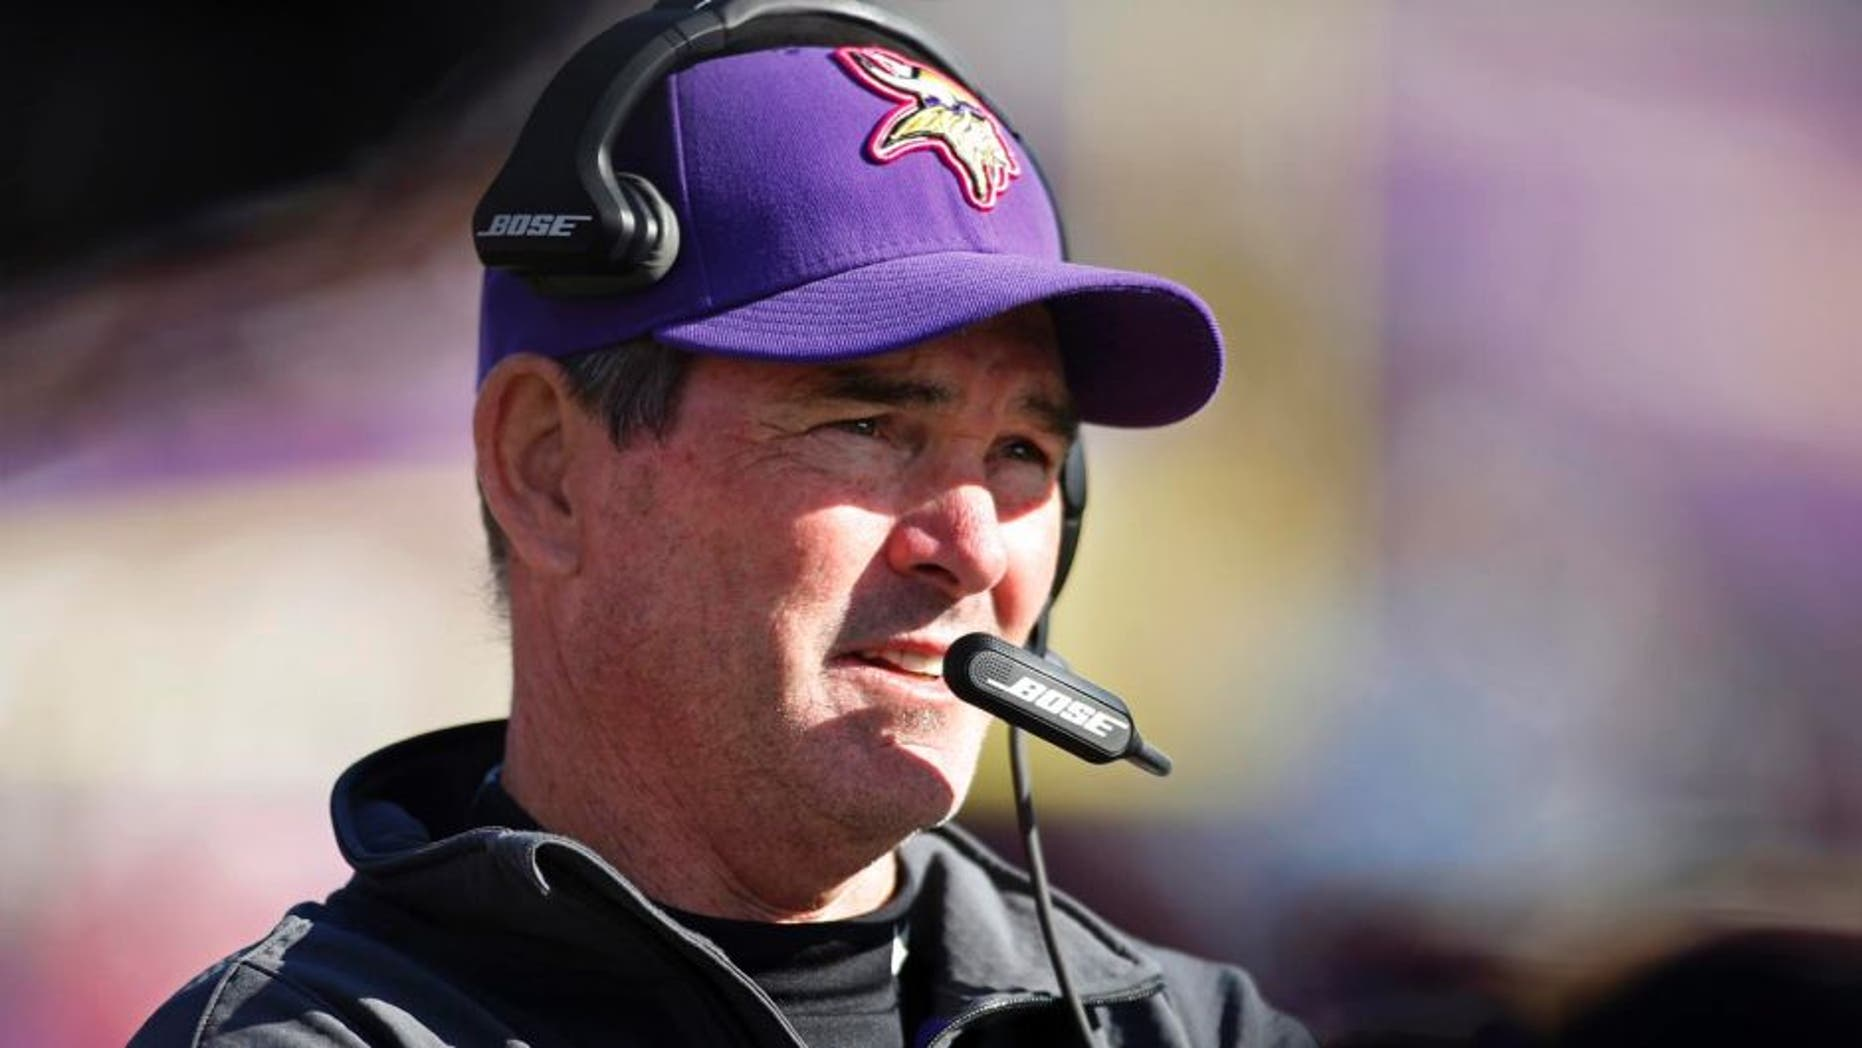 Oct 12, 2014; Minneapolis, MN, USA; Minnesota Vikings head coach Mike Zimmer watches as his team plays the Detroit Lions at TCF Bank Stadium. The Lions win 17-3. Mandatory Credit: Bruce Kluckhohn-USA TODAY Sports